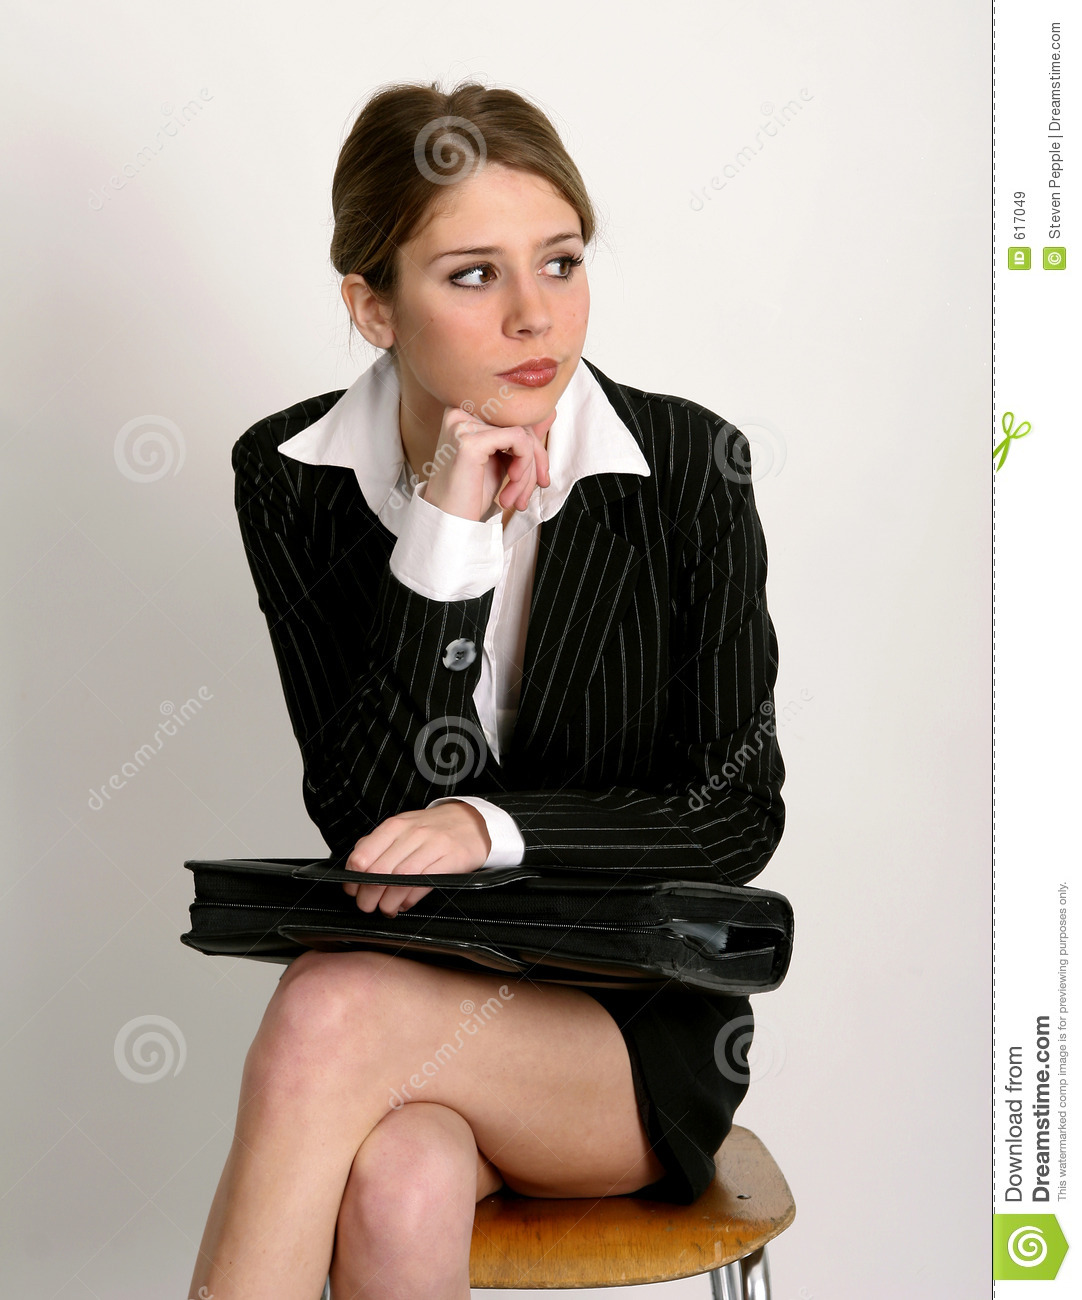 Young woman in business suit sitting on chair with briefcase in her